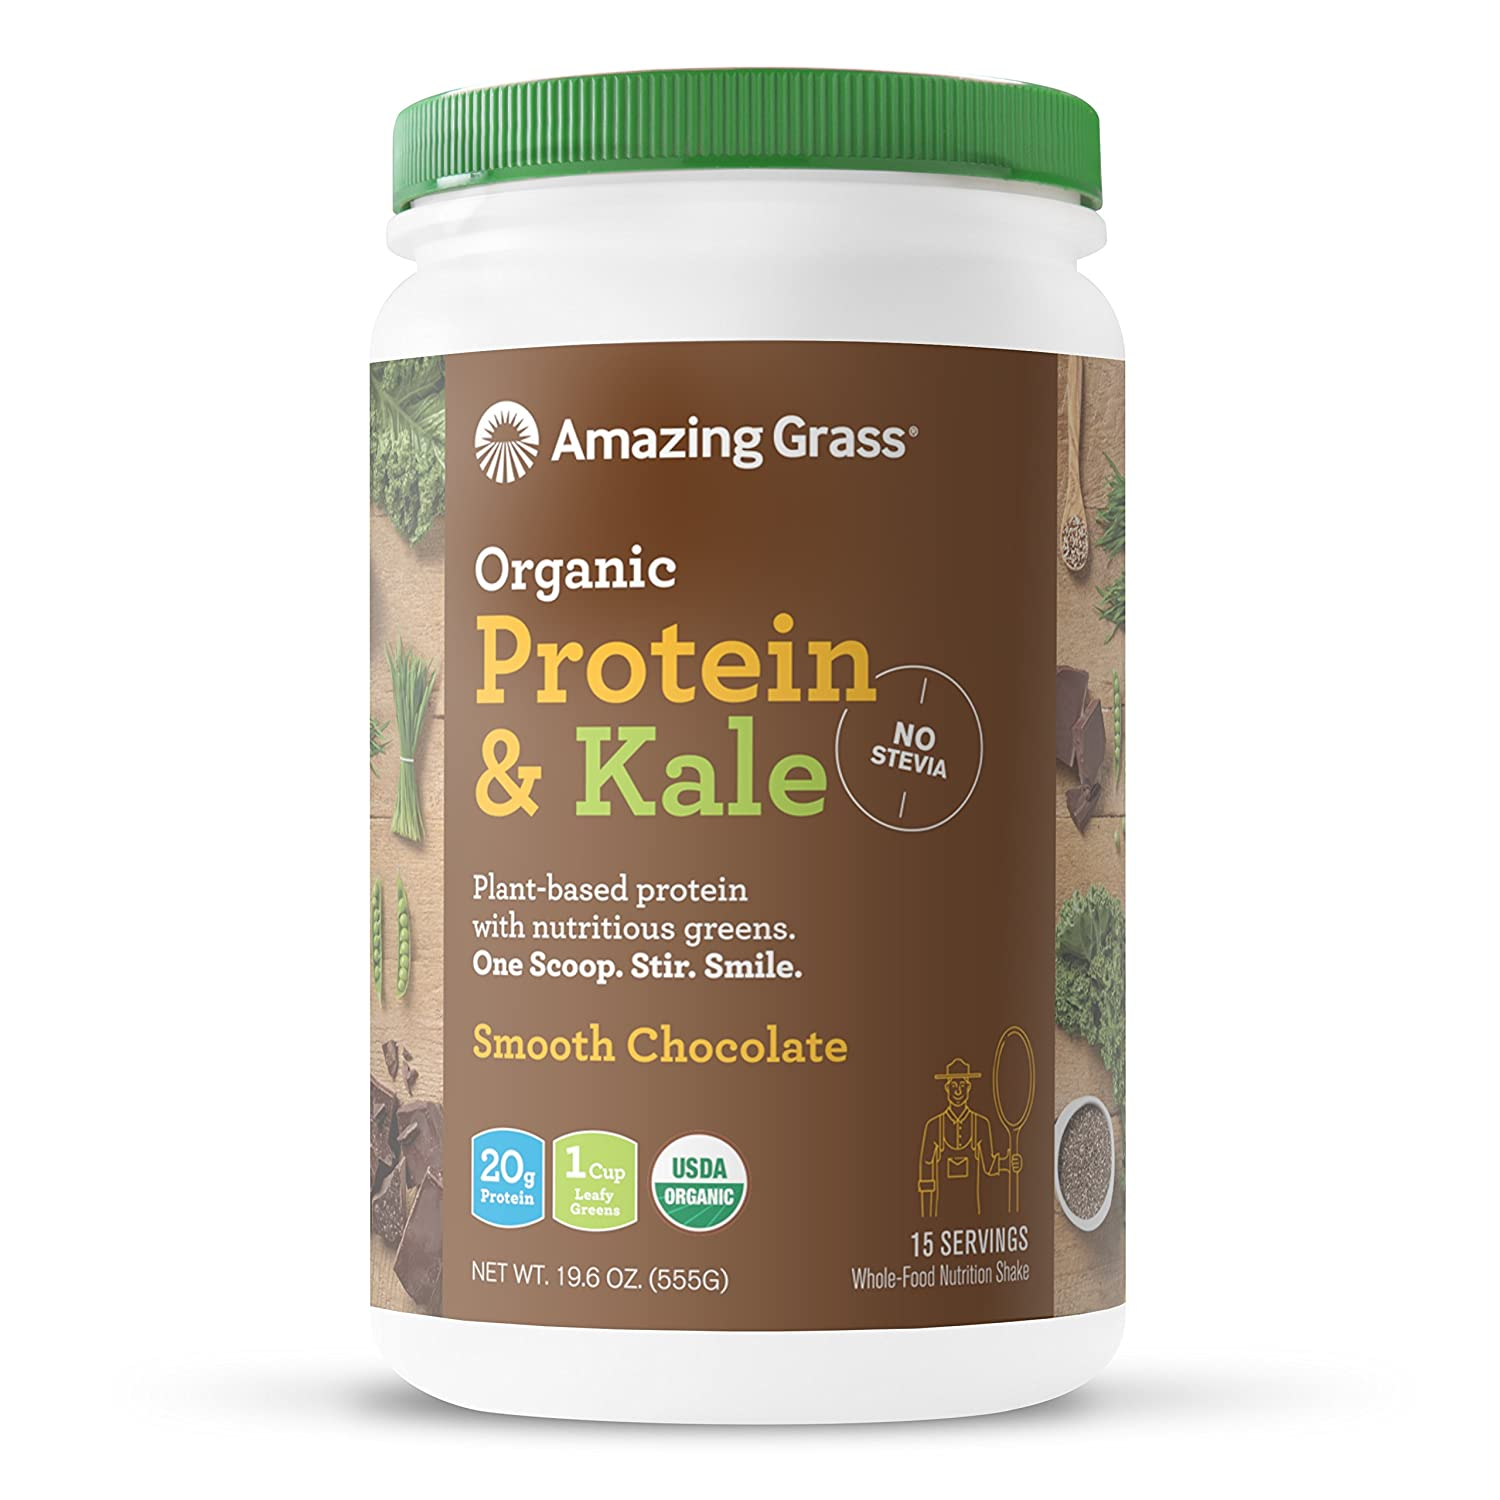 Amazing Grass Vegan Protein & Kale Powder: 20g of Organic Protein + 1 Cup Leafy Greens per Serving, Chocolate, 15 Servings